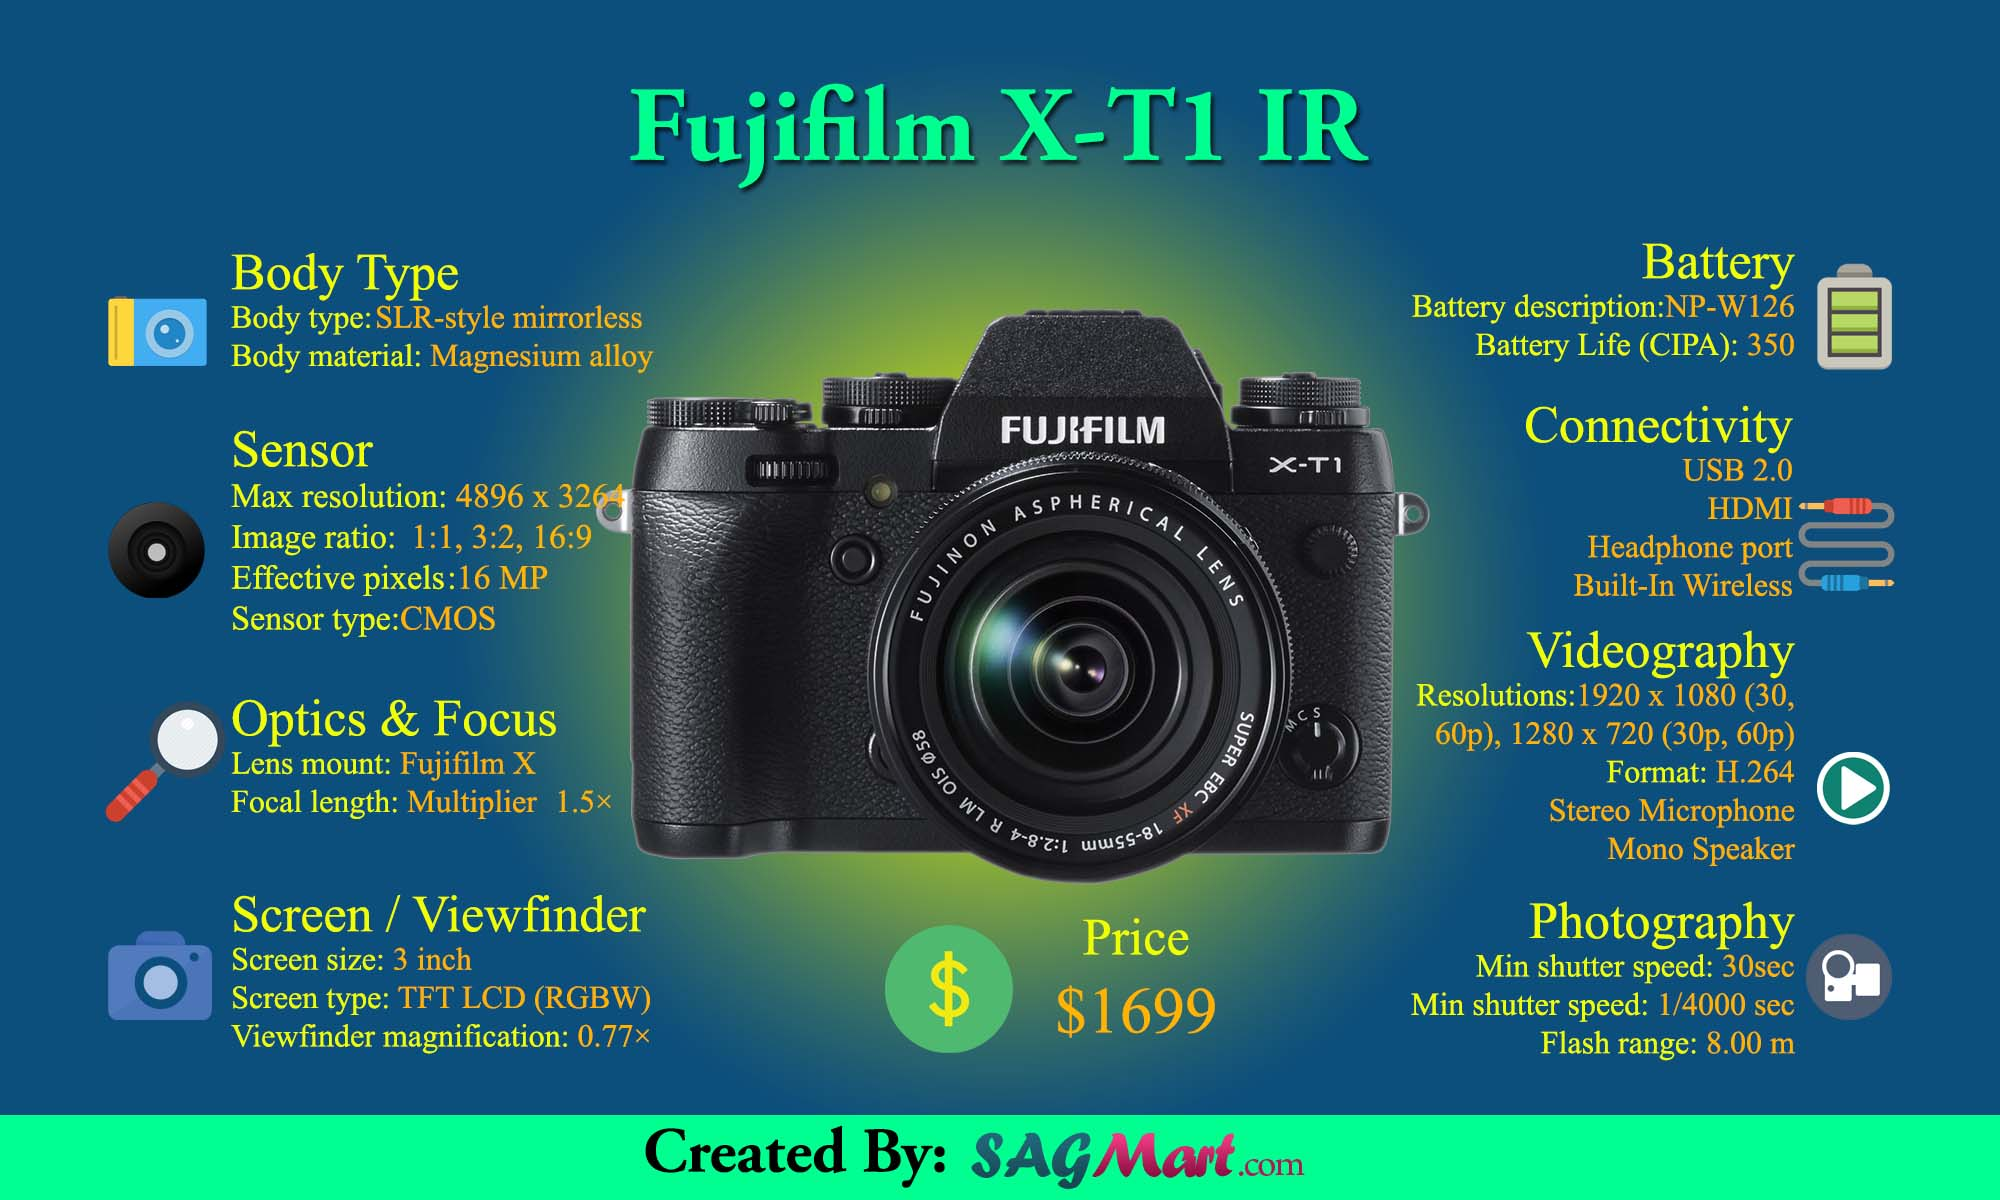 Fujifilm X-T1 IR specifications